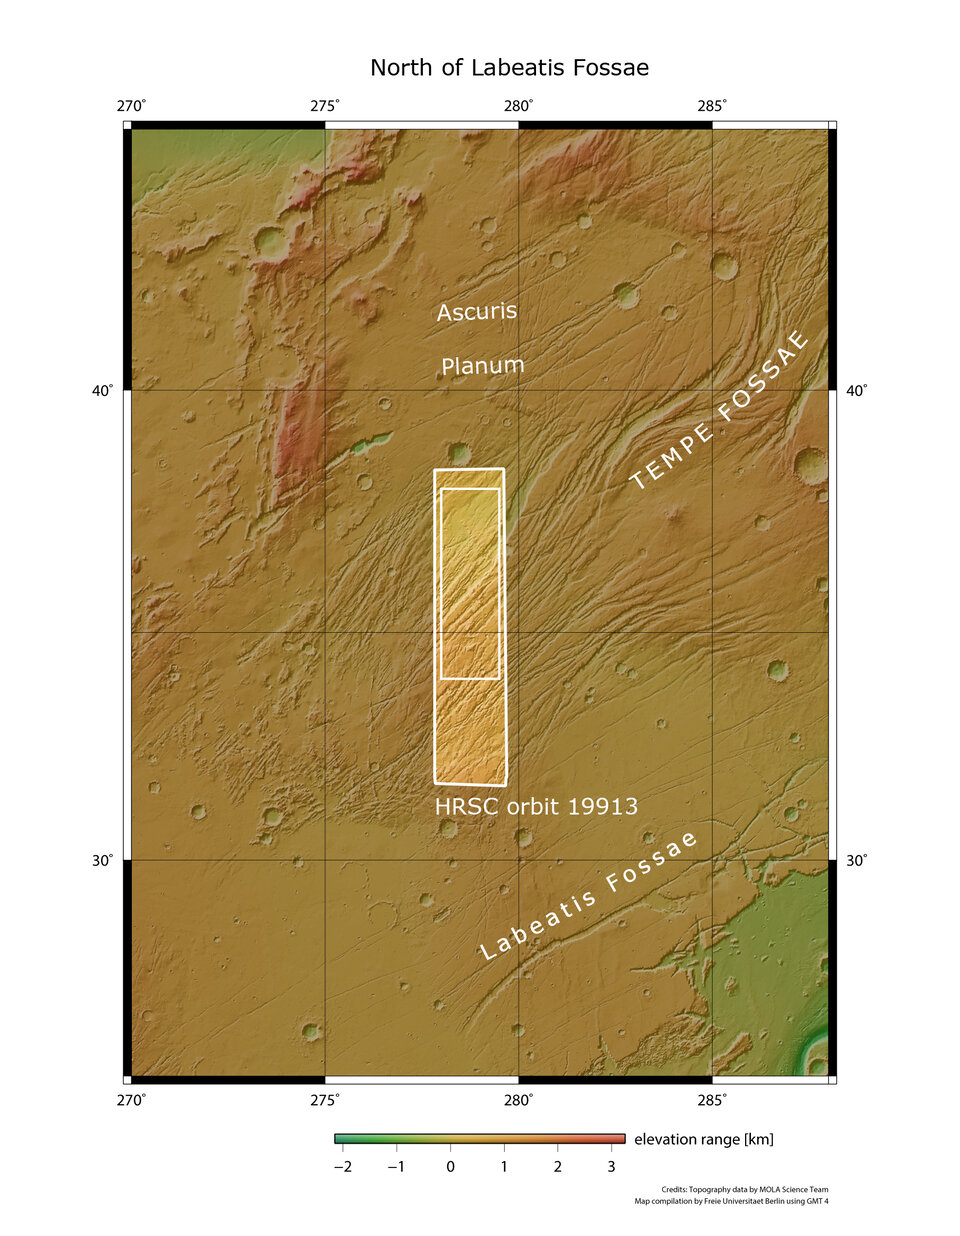 Northeast of Mars' Tharsis province: Tempe Fossae in context